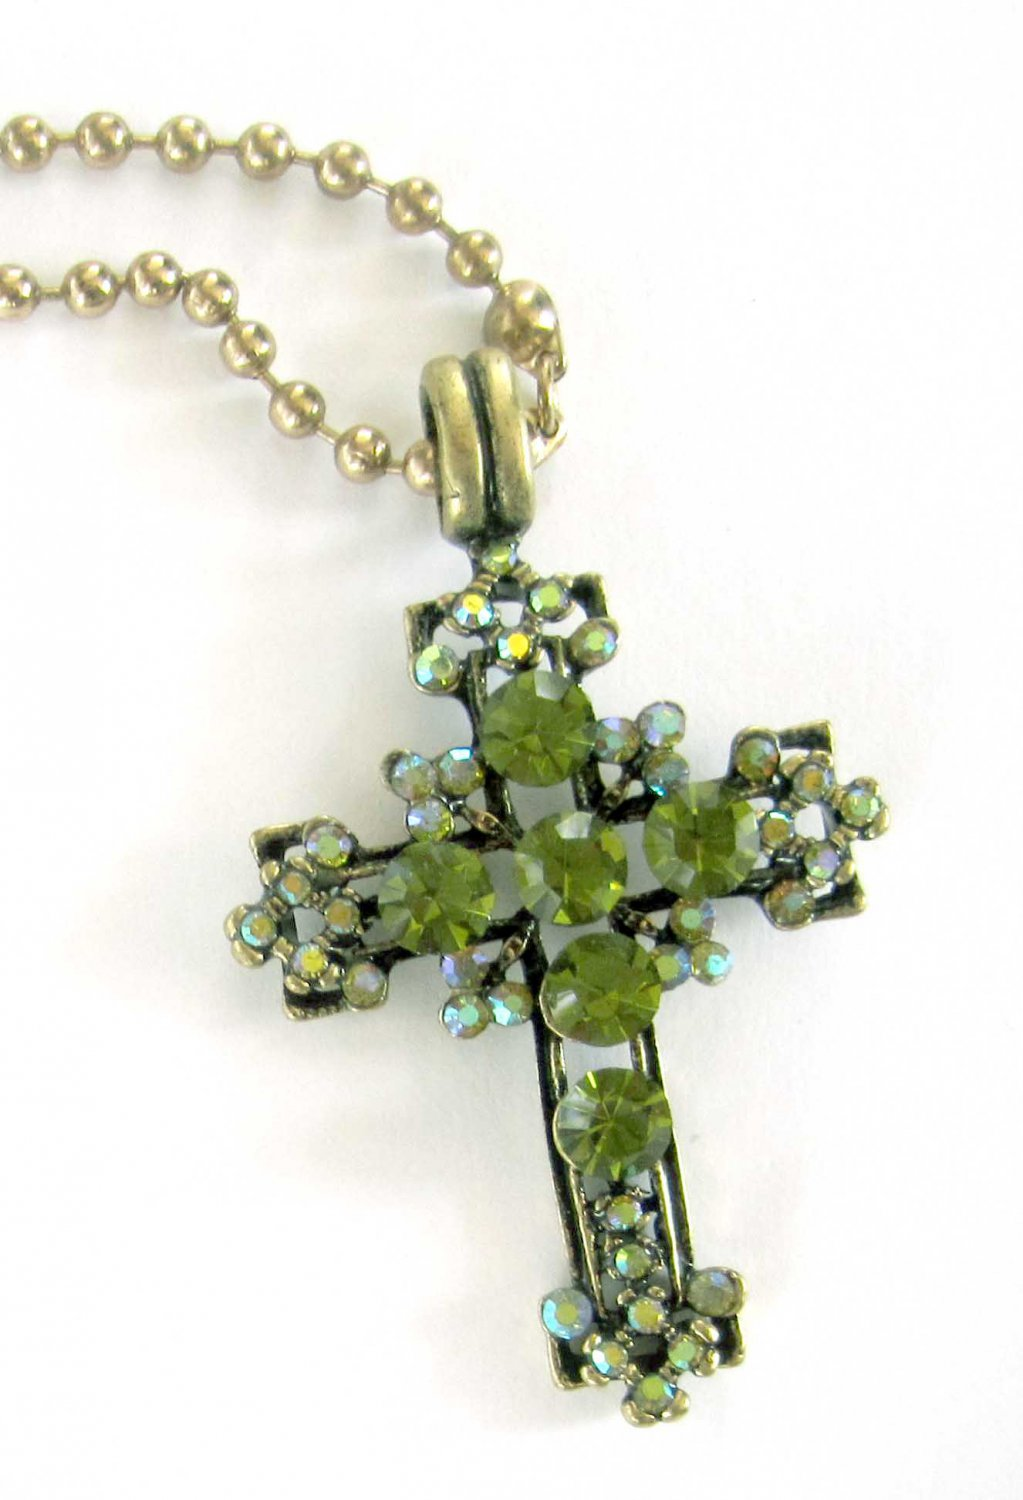 Gold necklace cross with green crystals pendant on chain